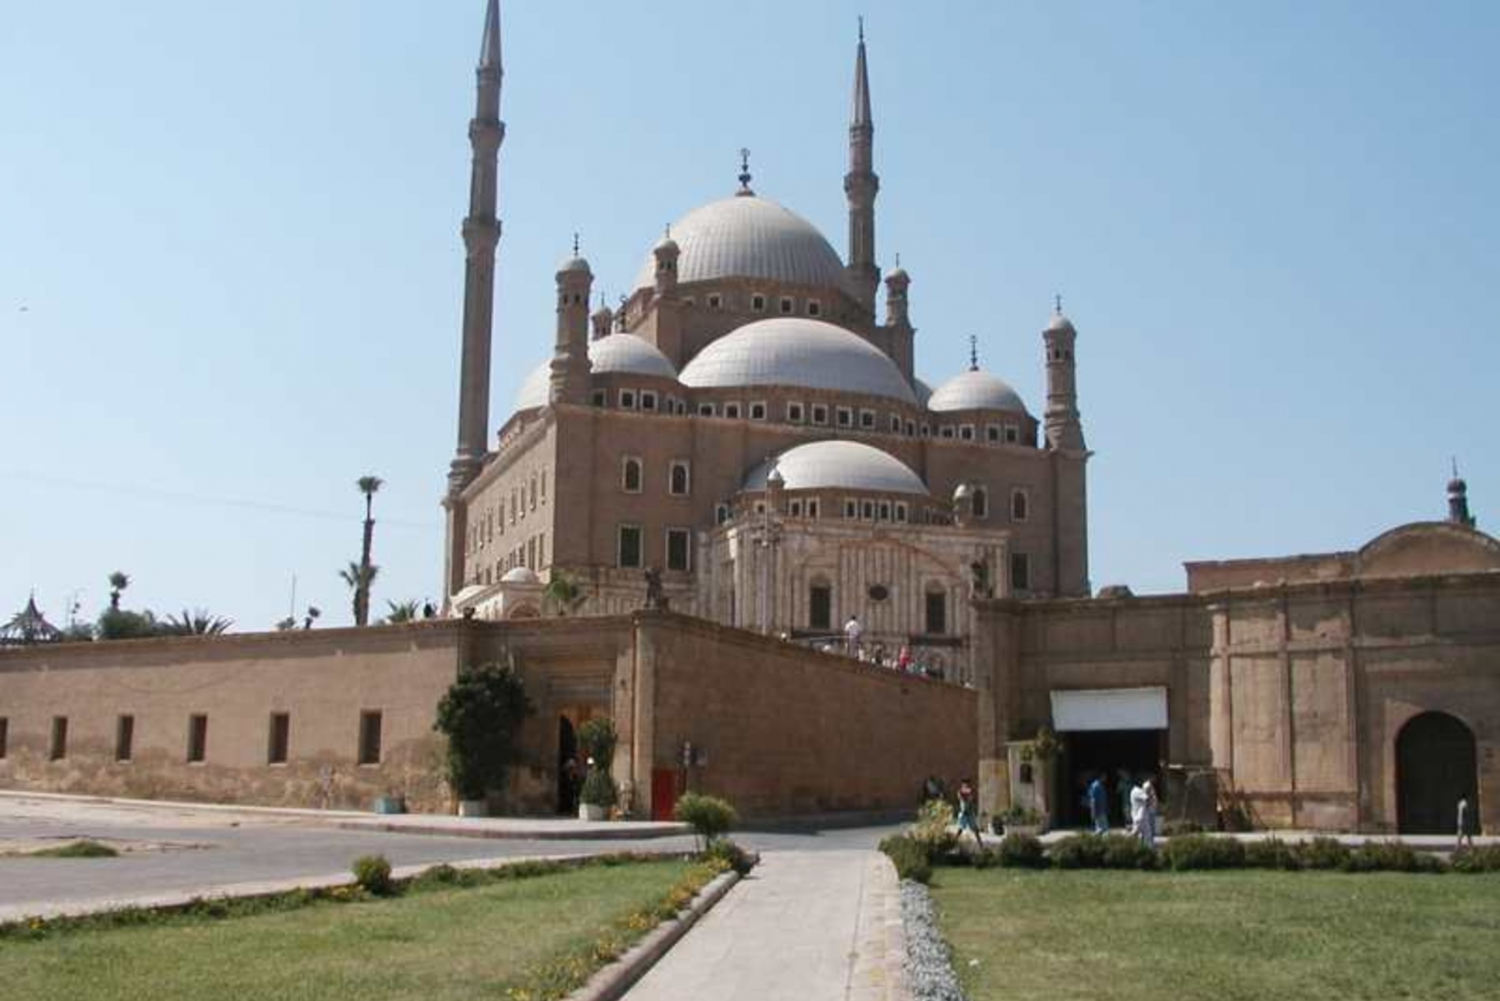 Cairo Citadel, Old Cairo & Khan El Khalili Full-Day Tour